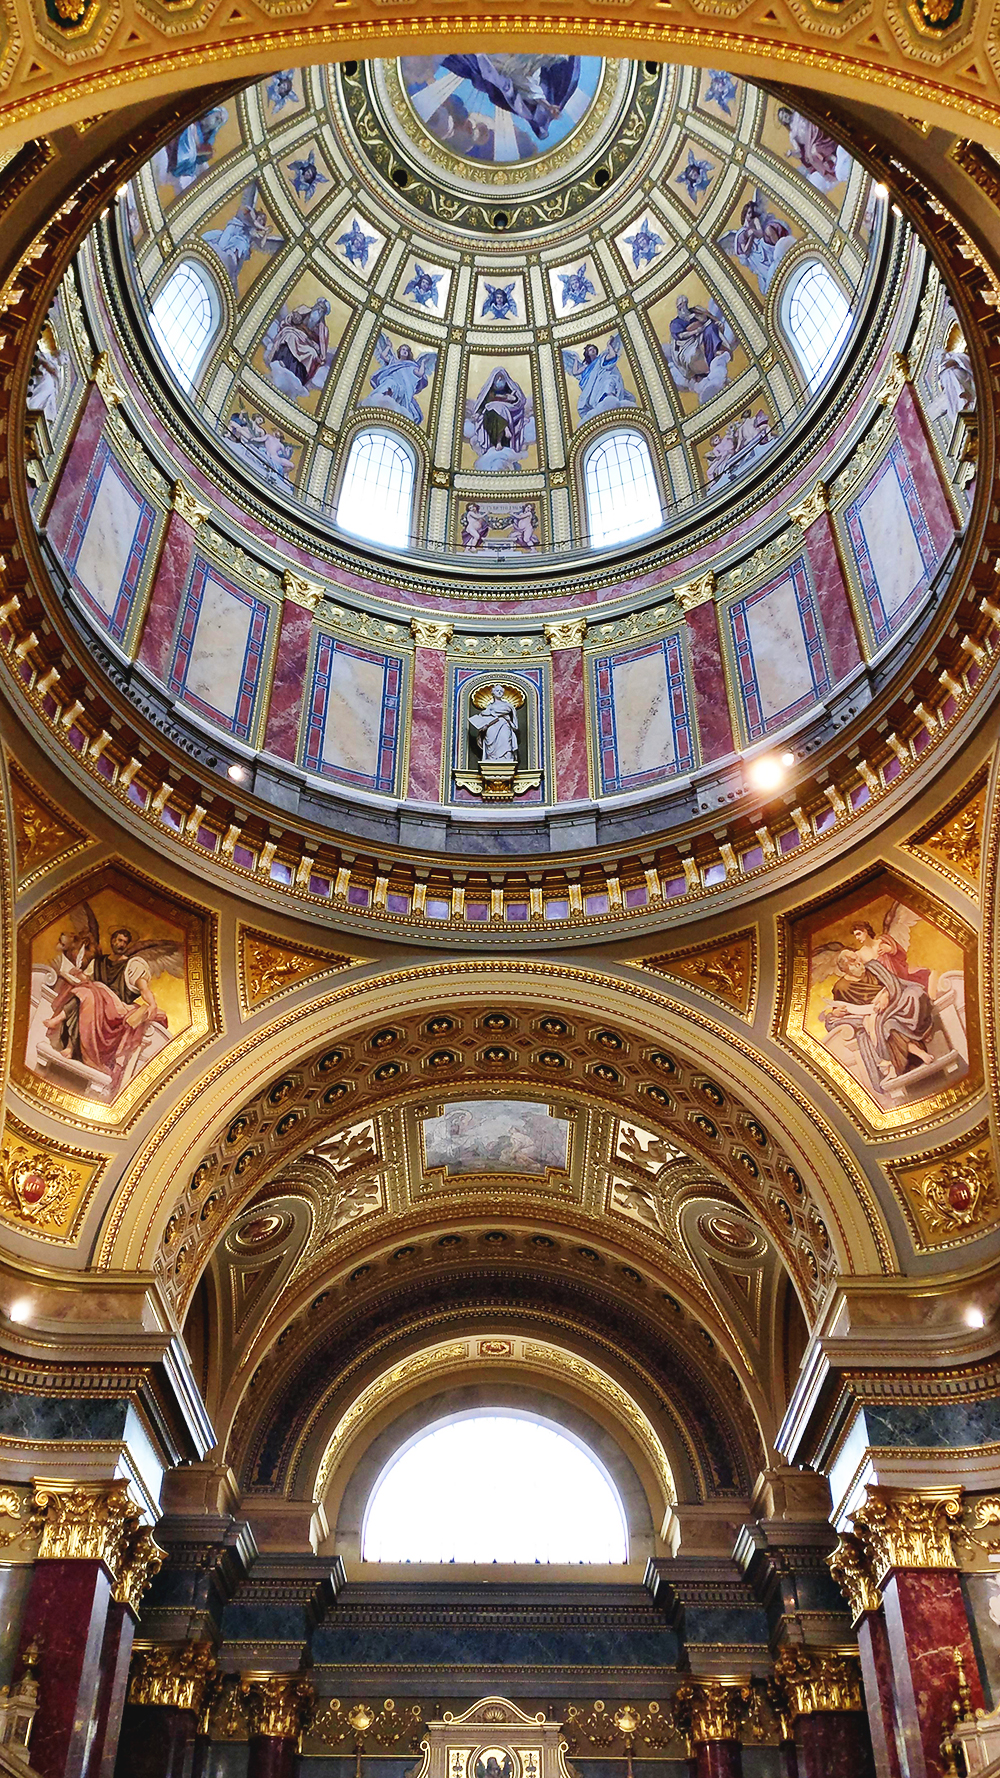 Visit St. Stephen's Basilica - Budapest bucket list - Top things to do in Budapest | Aliz's Wonderland #travel #Budapest #bucketlist #Budapestbucketlist #printable